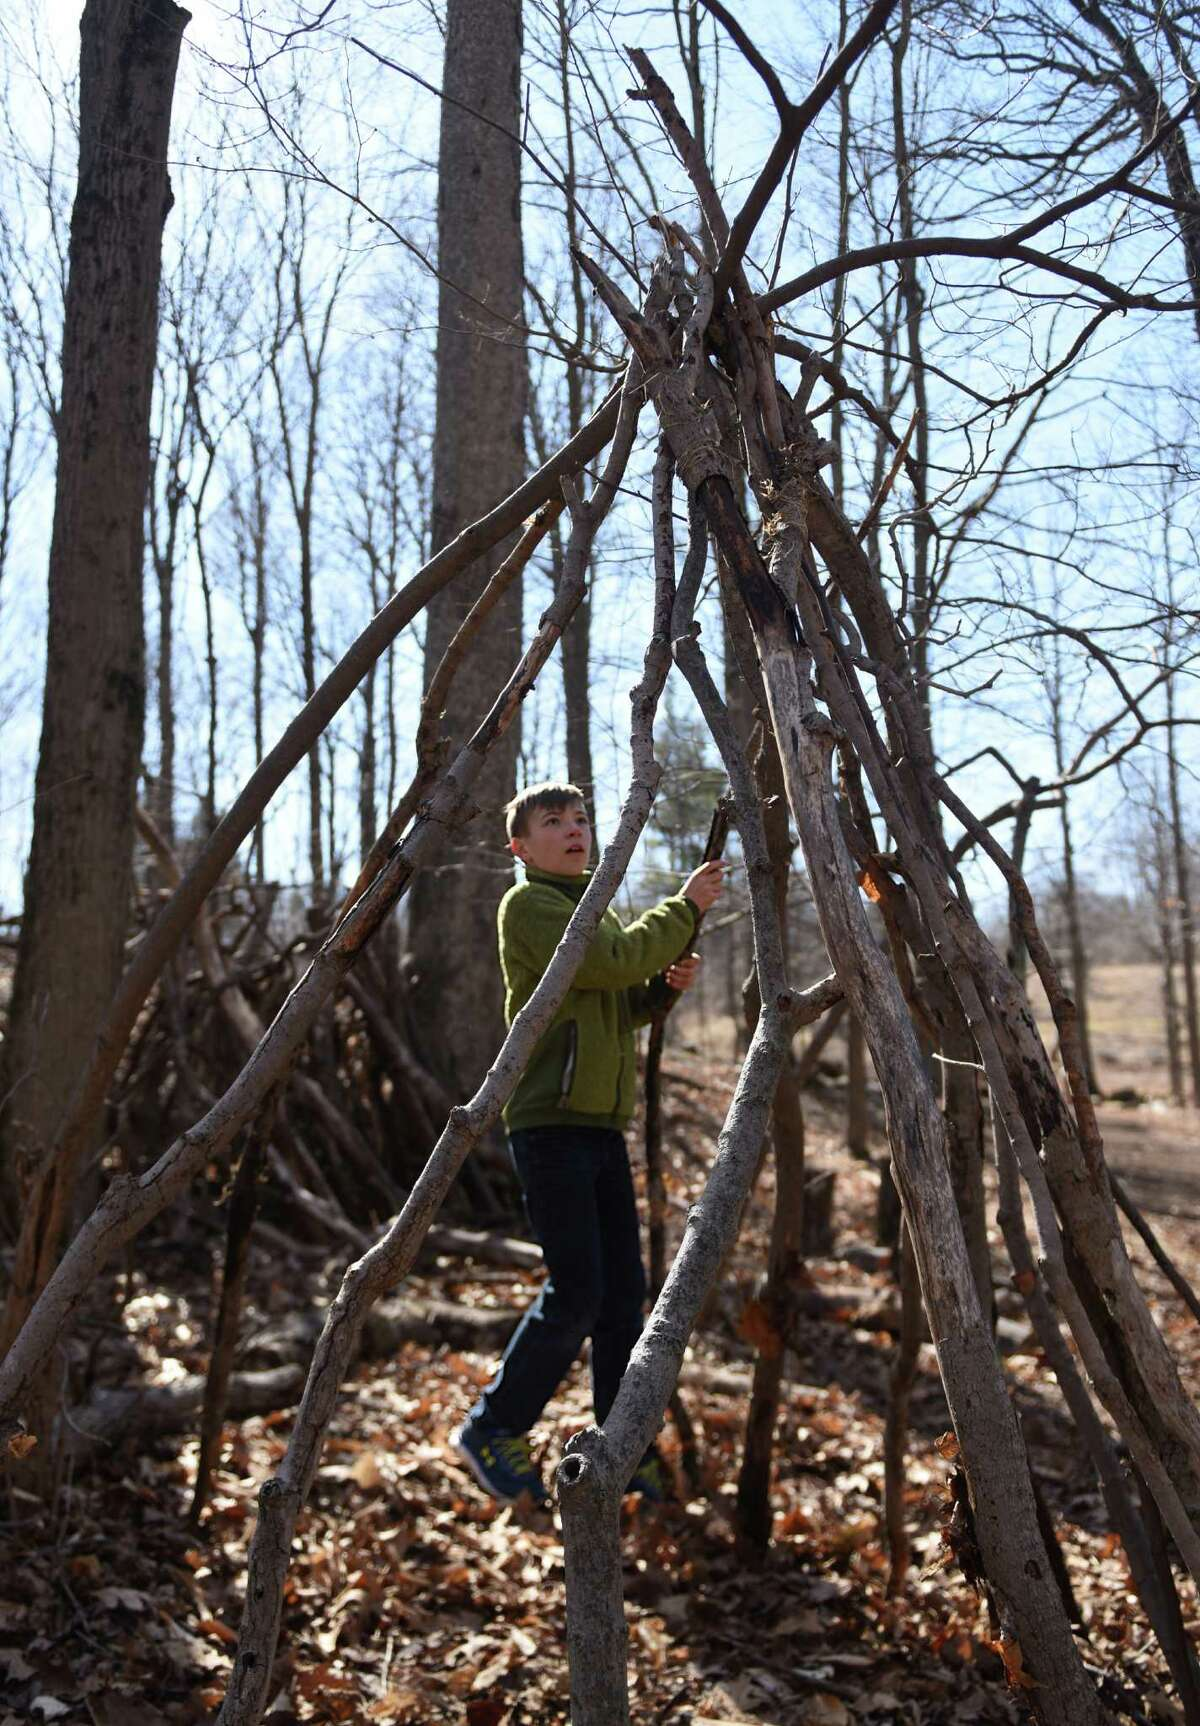 Isaac Saunderi, 11, of Stamford, constructs a survival shelter during the Family Nature Play Series at Audubon Greenwich in Greenwich, Conn. Sunday, March 6, 2016. Taught by Education Coordinator Susan Matthews, families learned how to collect sticks to build a campfire and build a survival lean-to shelter. The Family Nature Play Series occurs on the first Sunday of every month and provides hands-on, educational activities for children and parents. The next two sessions will be wildlife tracking and a sensory nature hike.